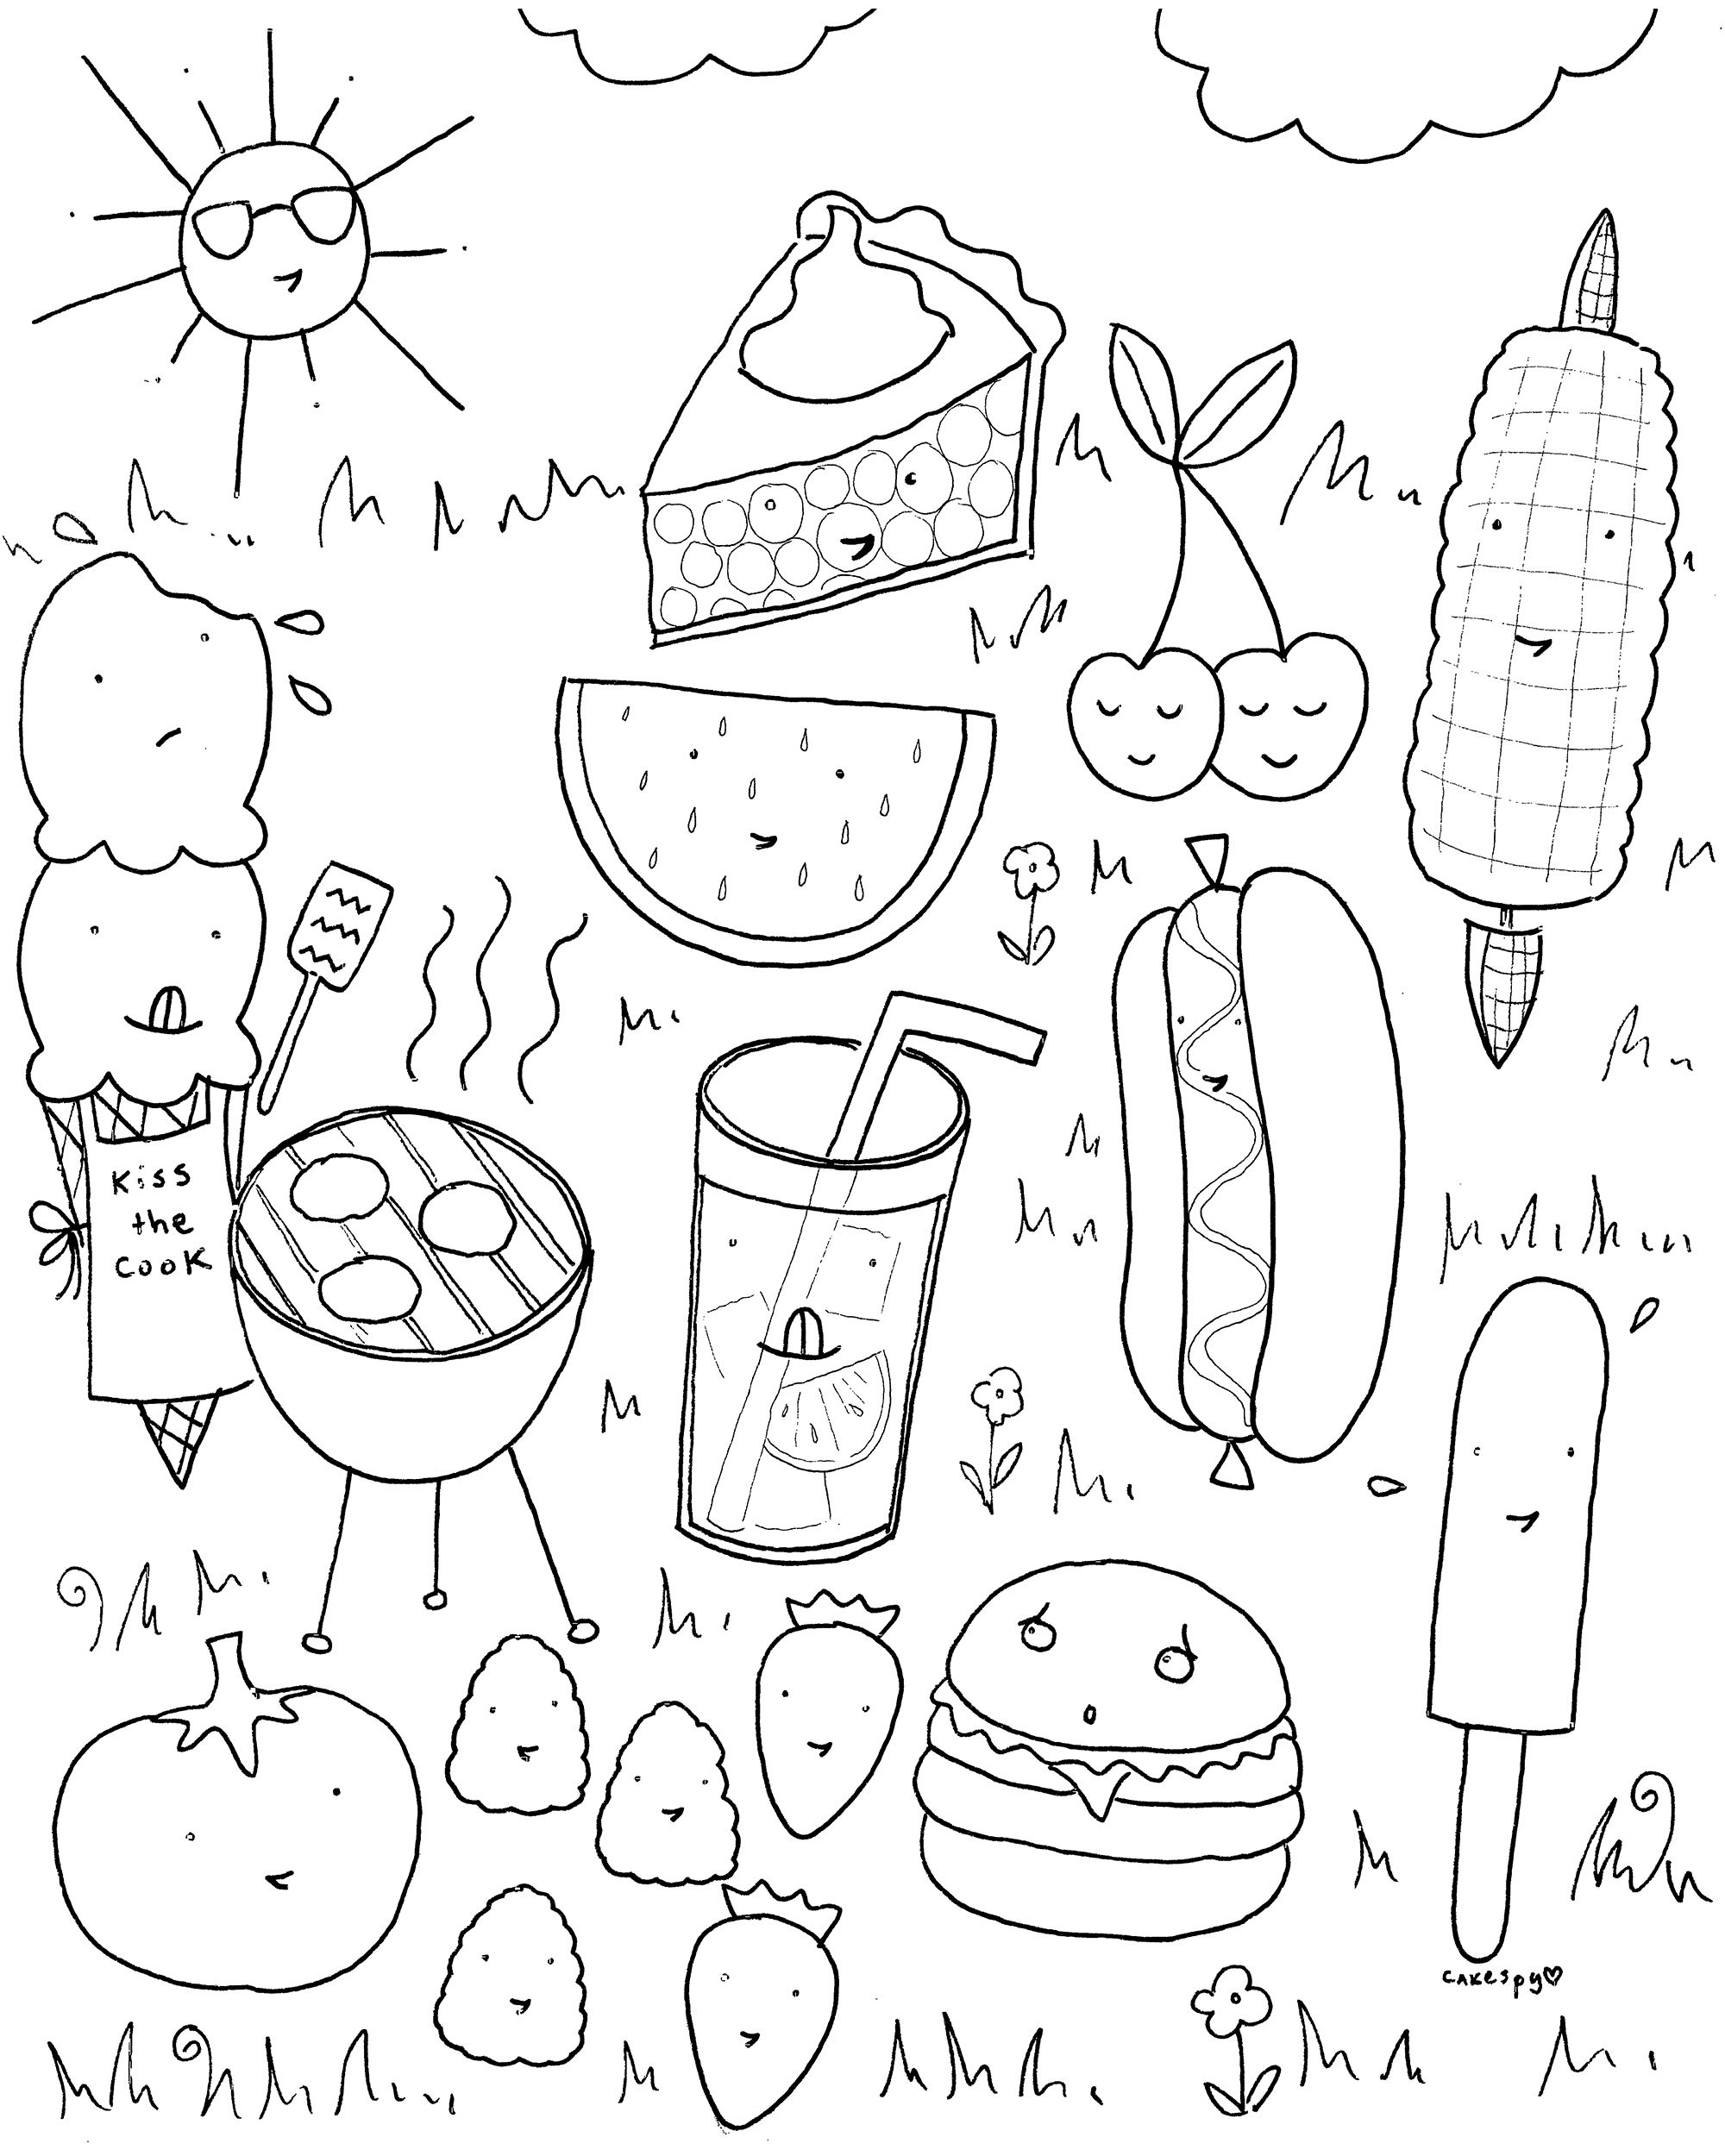 FREE Downloadable Summer Fun Coloring Book Pages | Pinterest ...